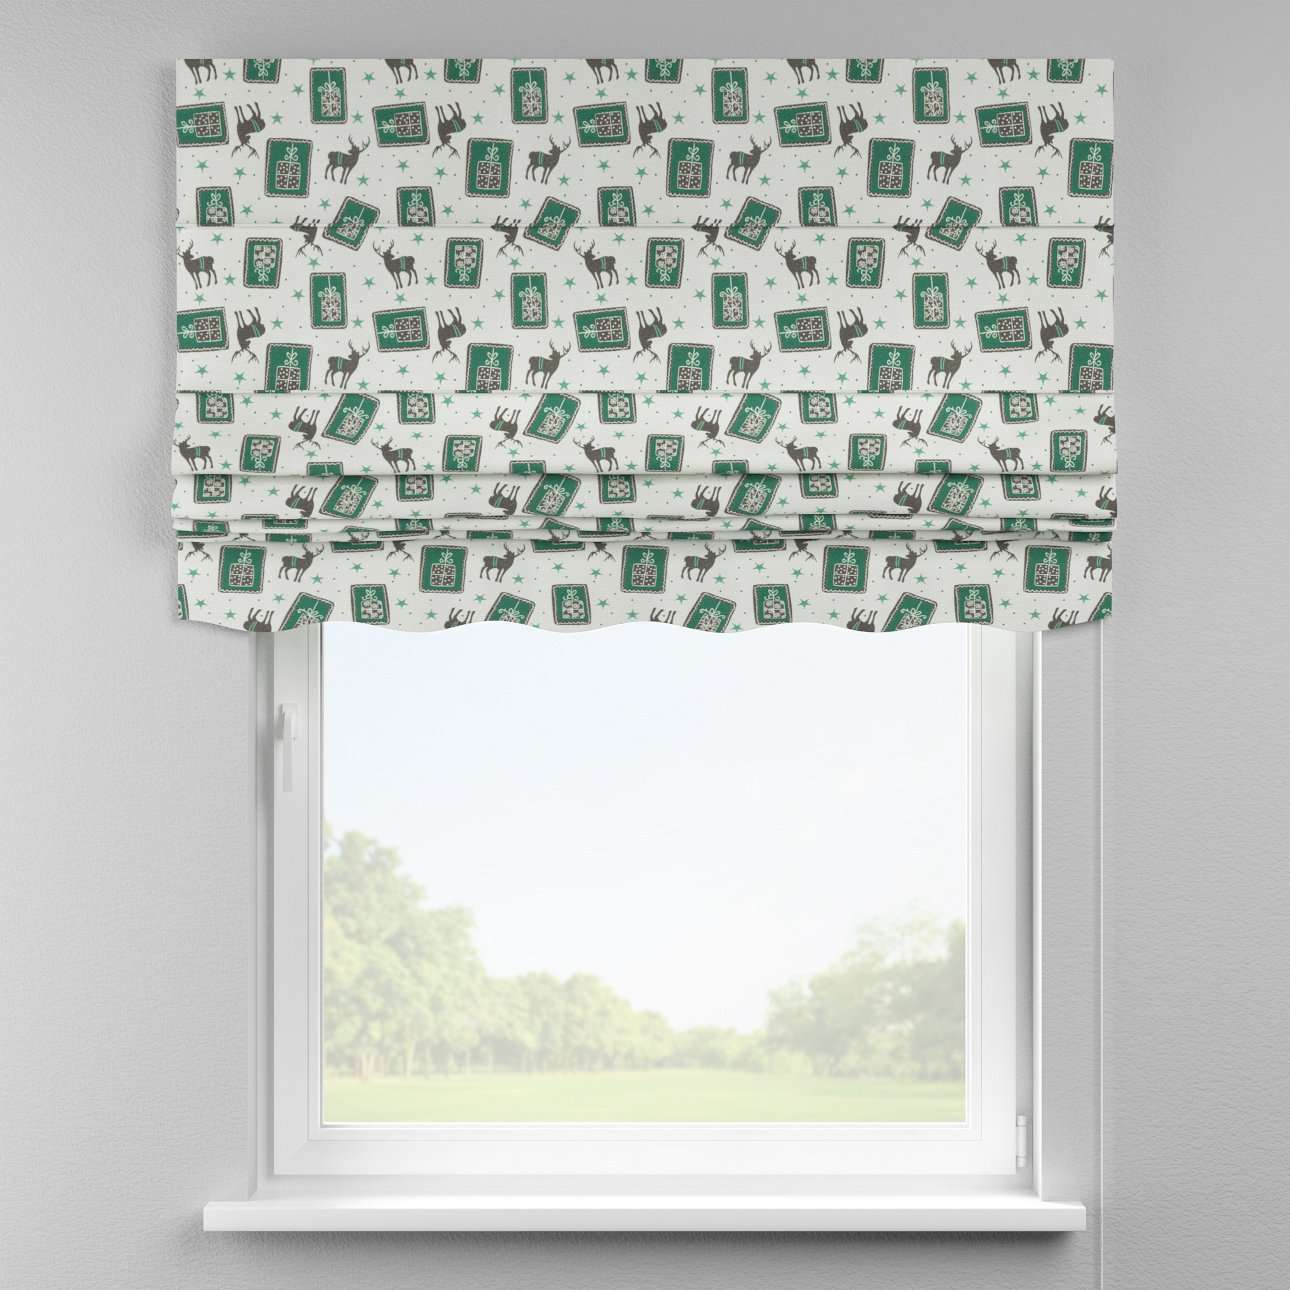 Florence roman blind  80 x 170 cm (31.5 x 67 inch) in collection Nordic, fabric: 630-13